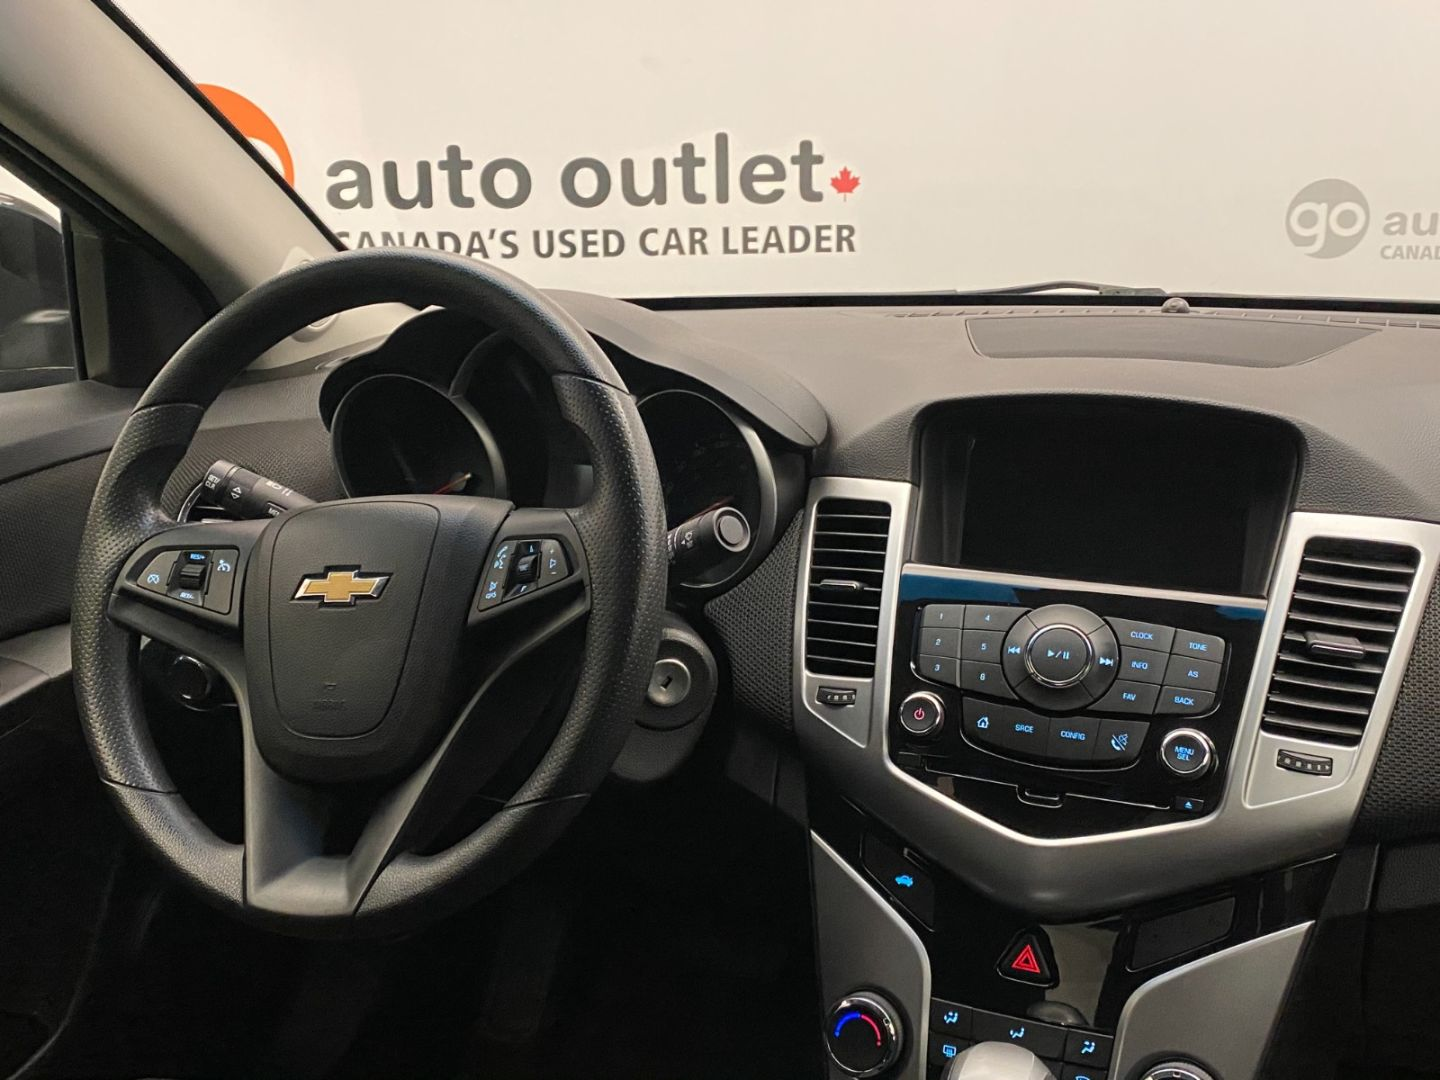 2016 Chevrolet Cruze Limited LT for sale in Leduc, Alberta